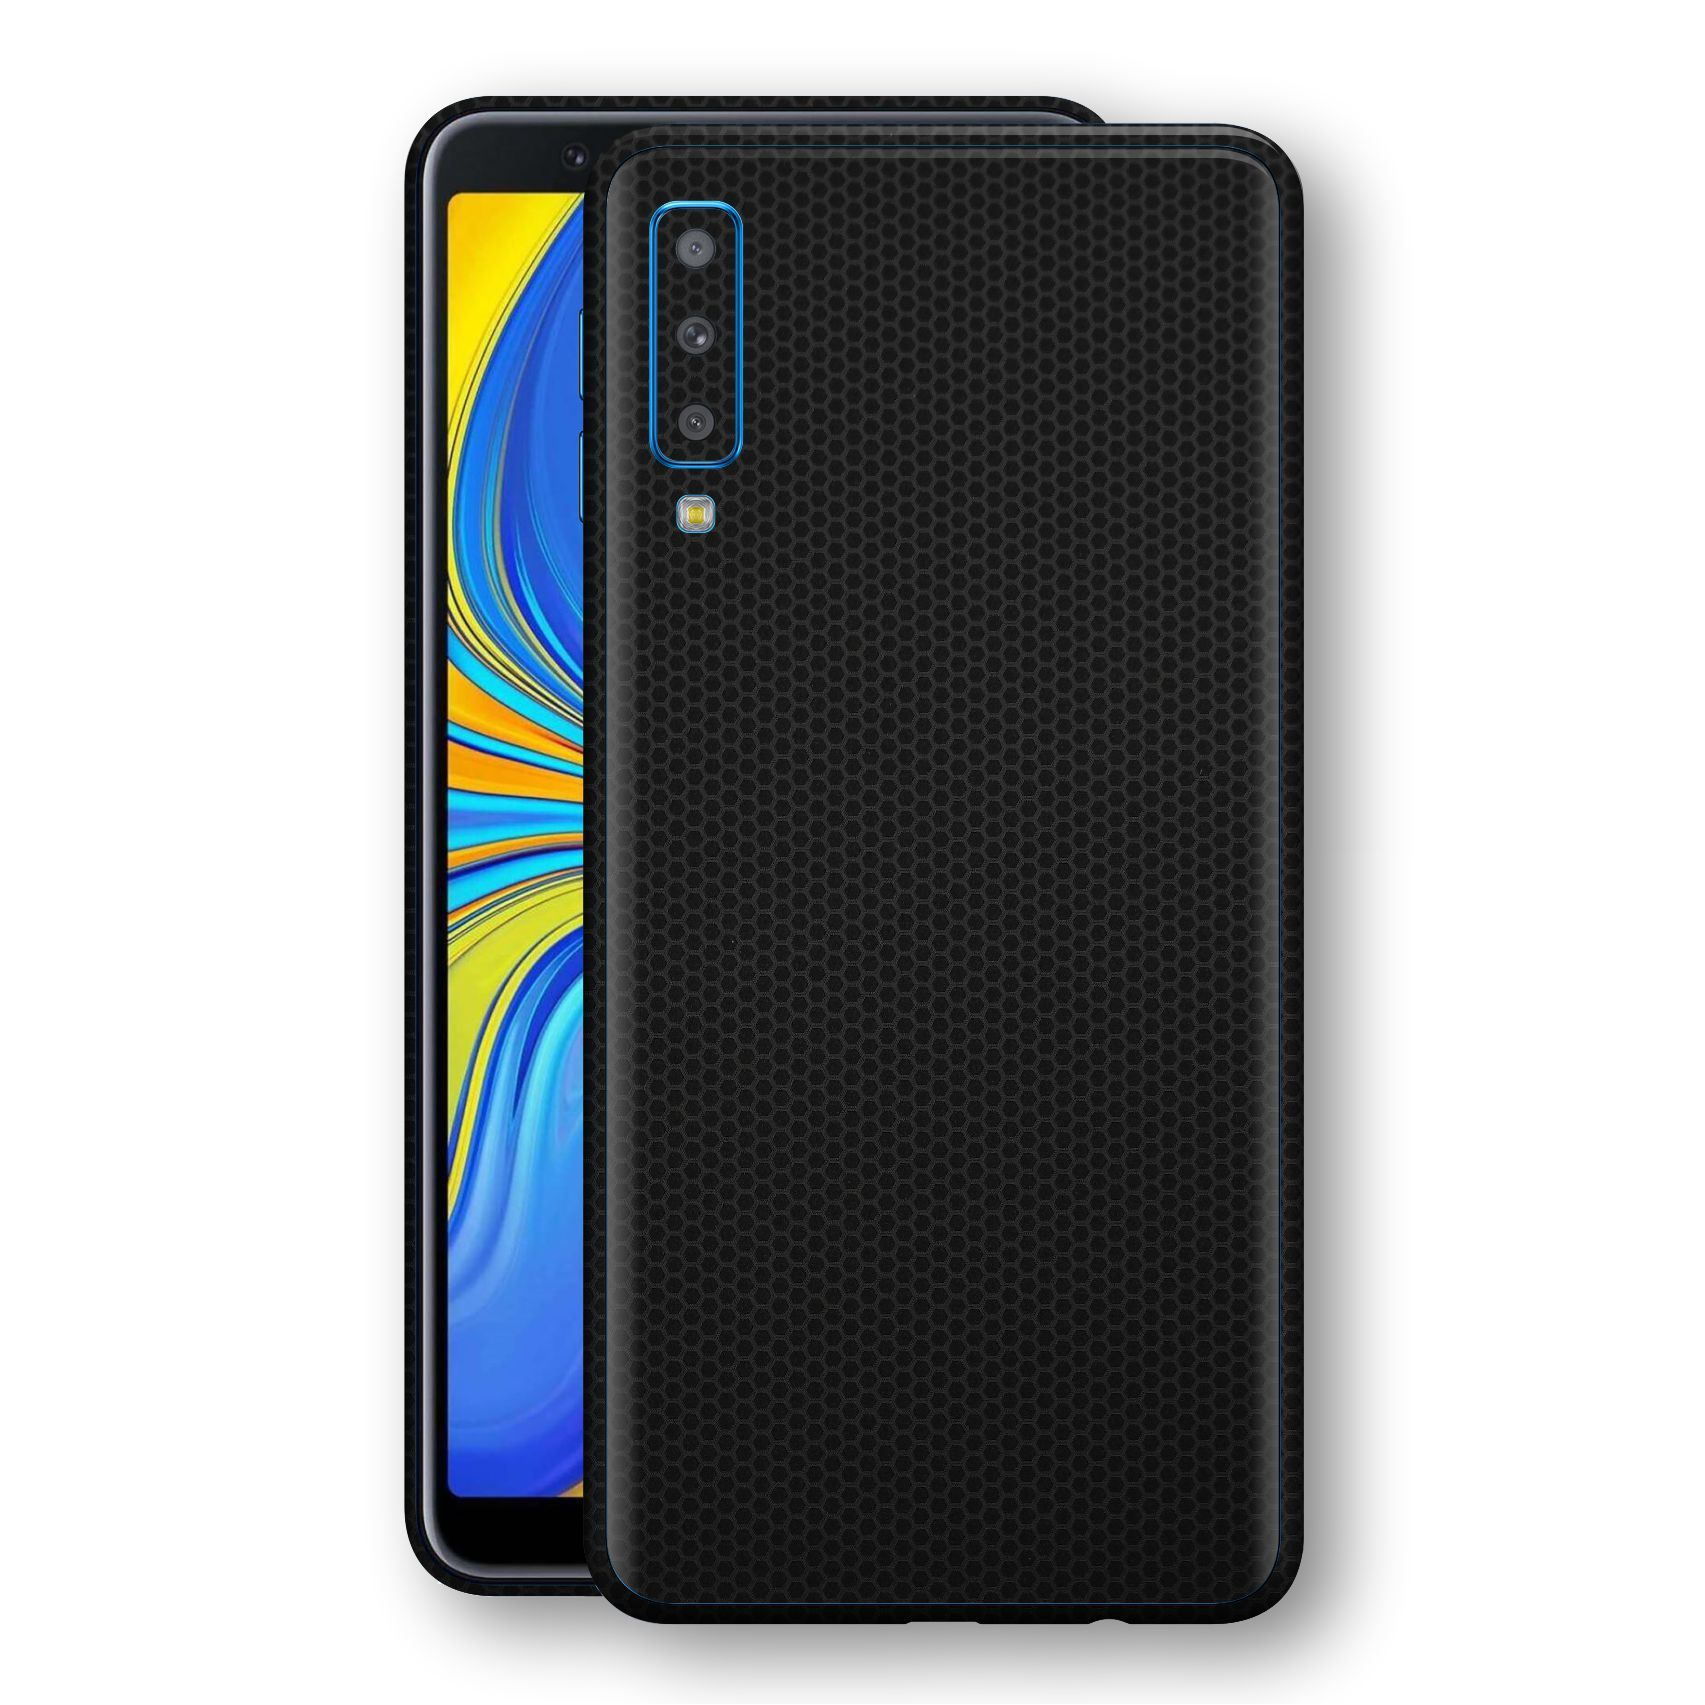 Samsung Galaxy A7 (2018) Black Matrix Textured Skin Wrap Decal 3M by EasySkinz